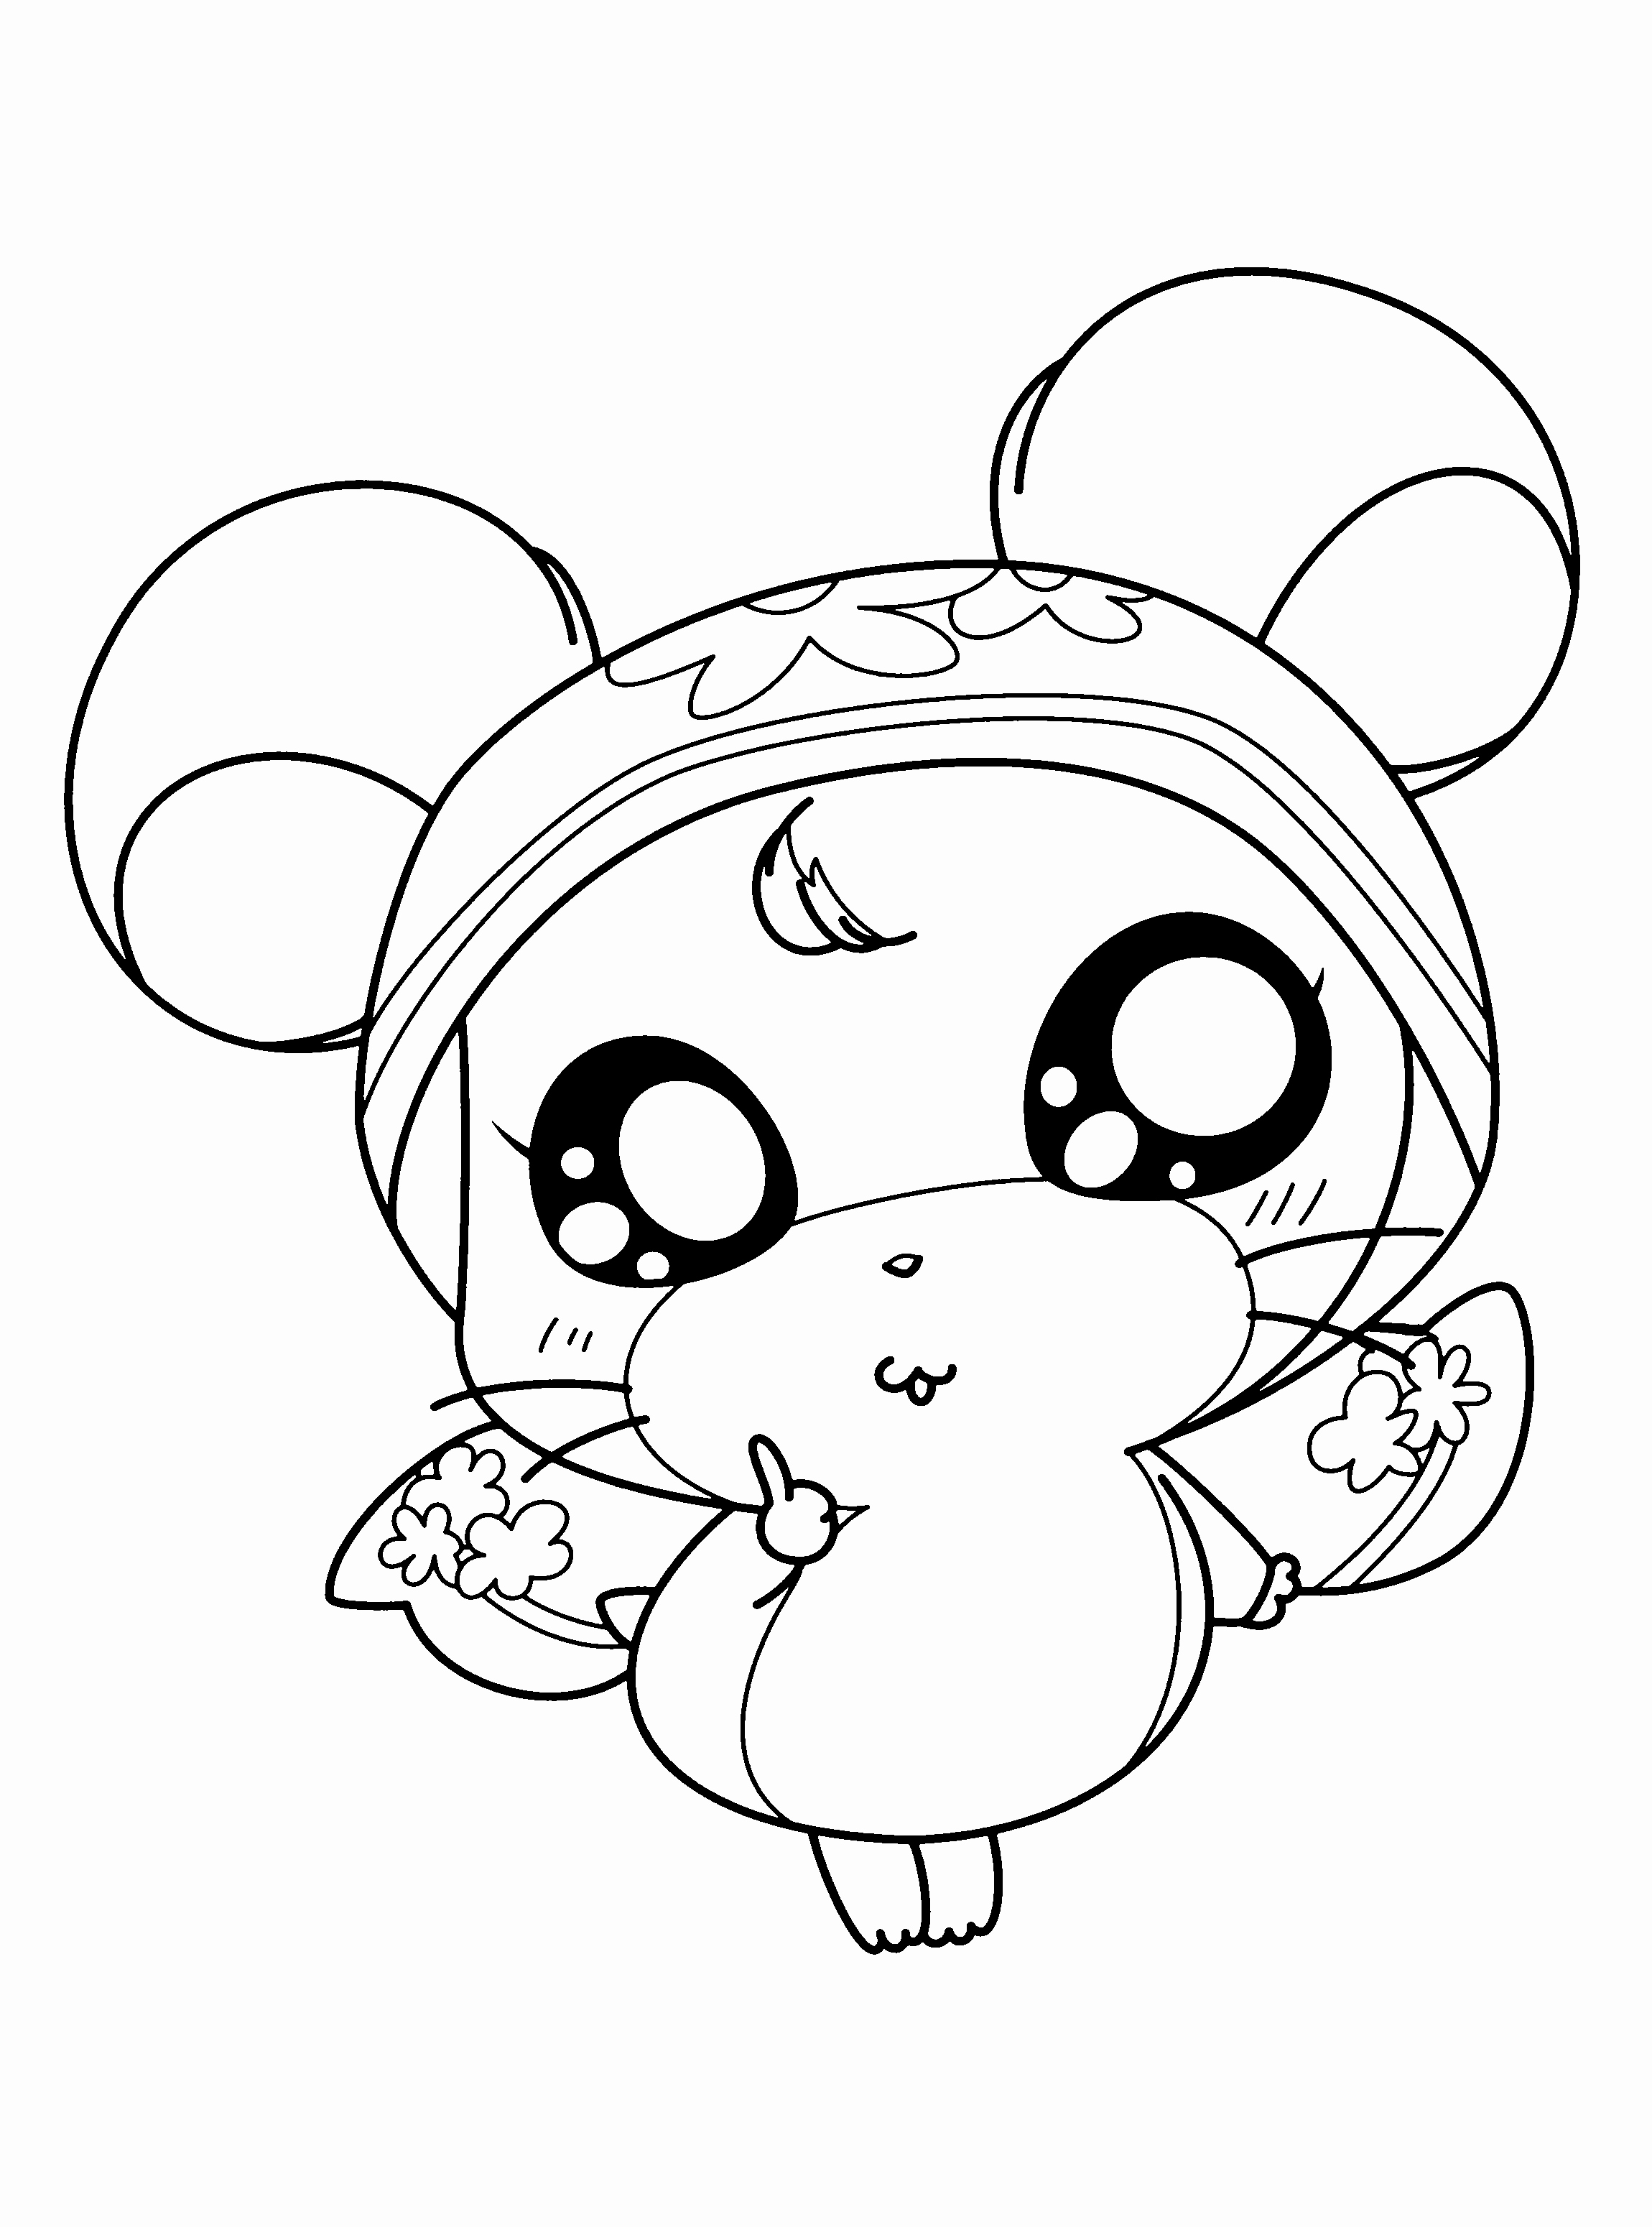 cute pumpkin coloring pages 4 picture of cute pumpkin coloring pages gtgt disney cute pumpkin pages coloring